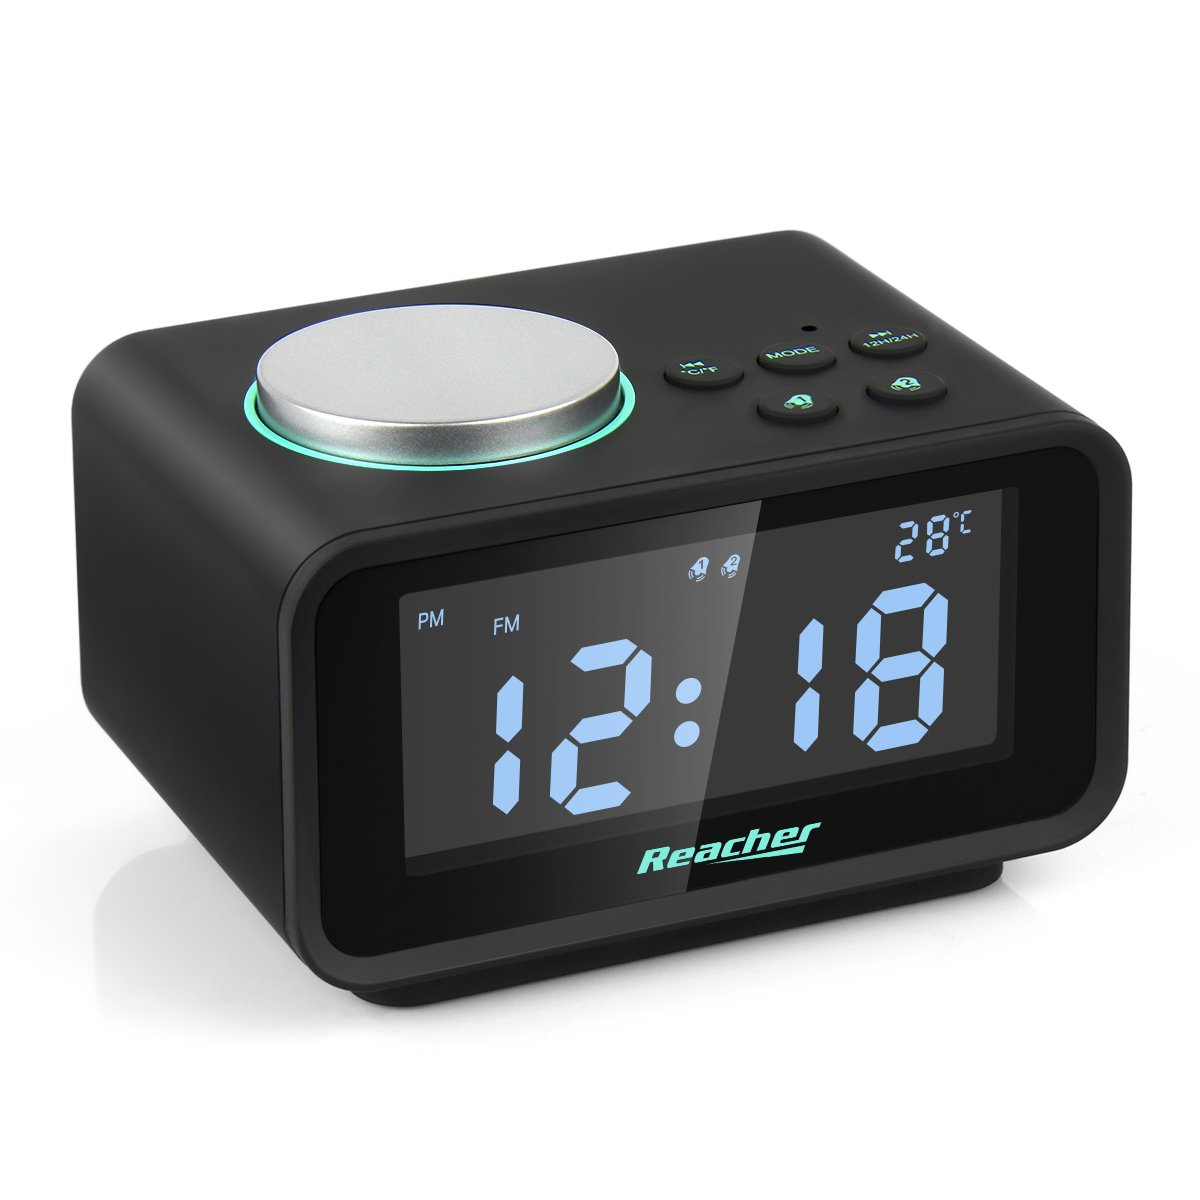 Reacher Alarm Clock Radio with Dual USB Charger Ports 6 Dimmer Snooze Battery Backup FM Indoor Thermometer Adjustable Volume for Bedroom Digital Two Alarm